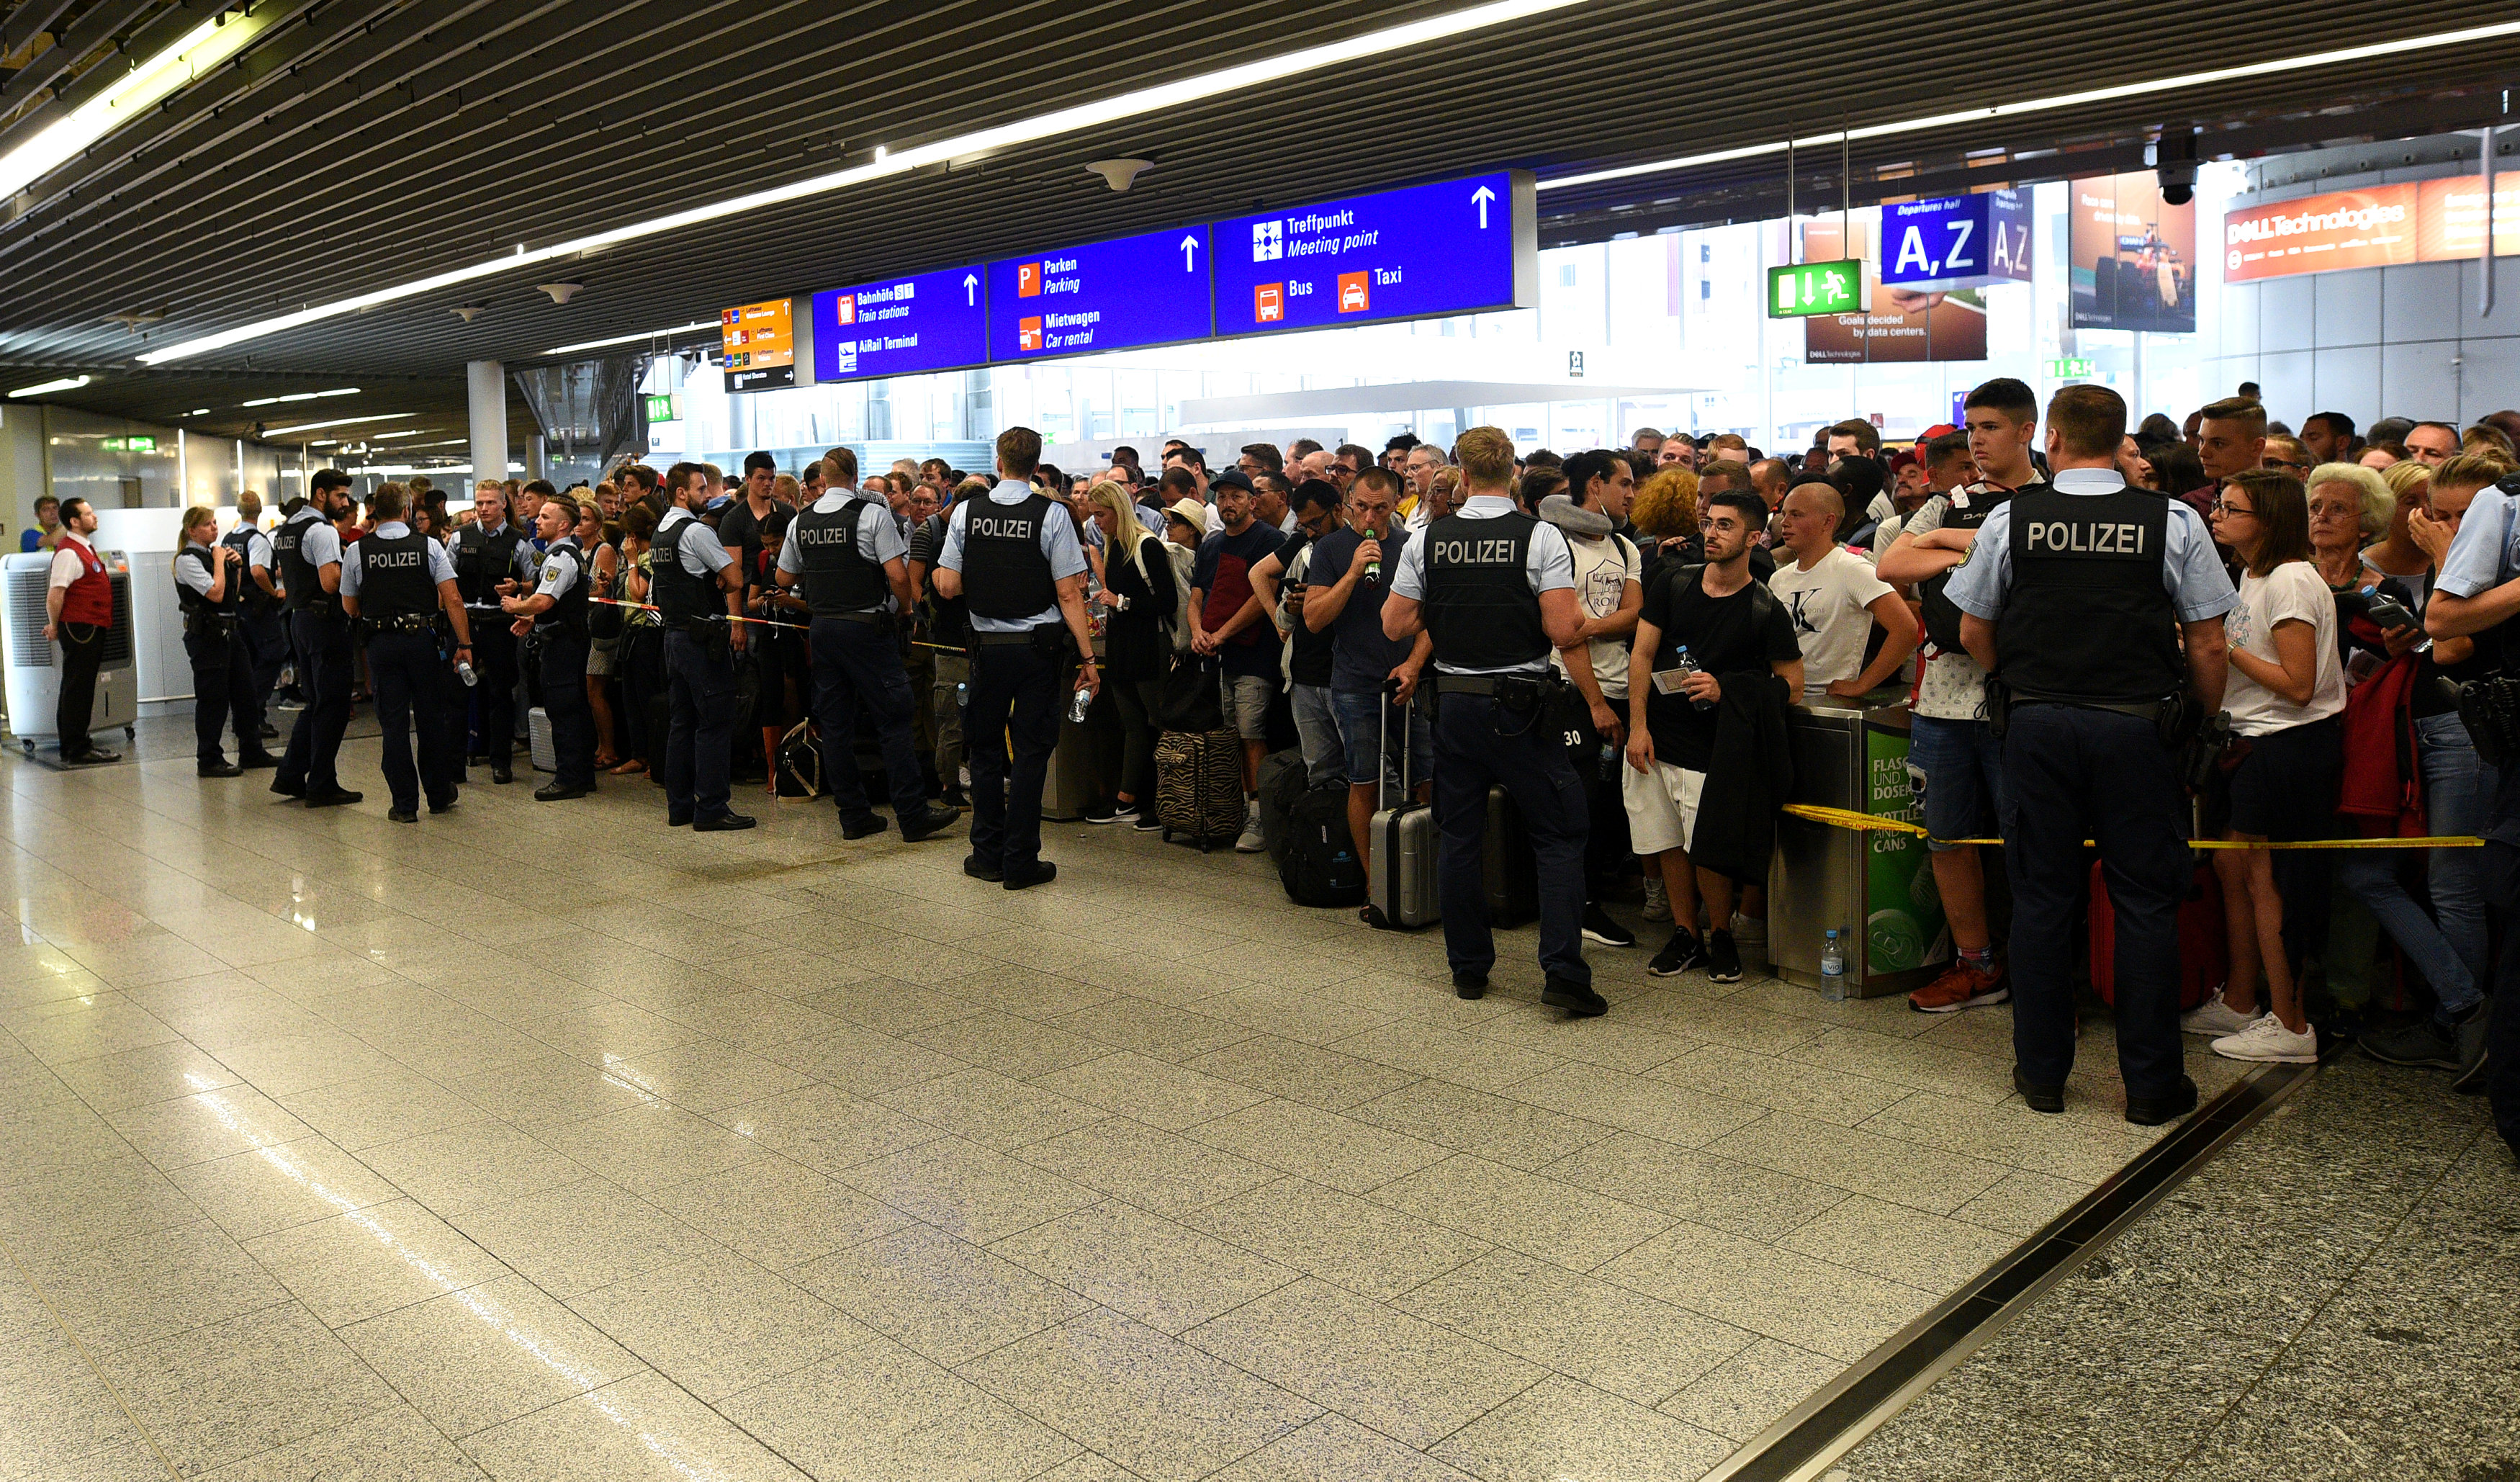 Evacuation of Frankfurt airport